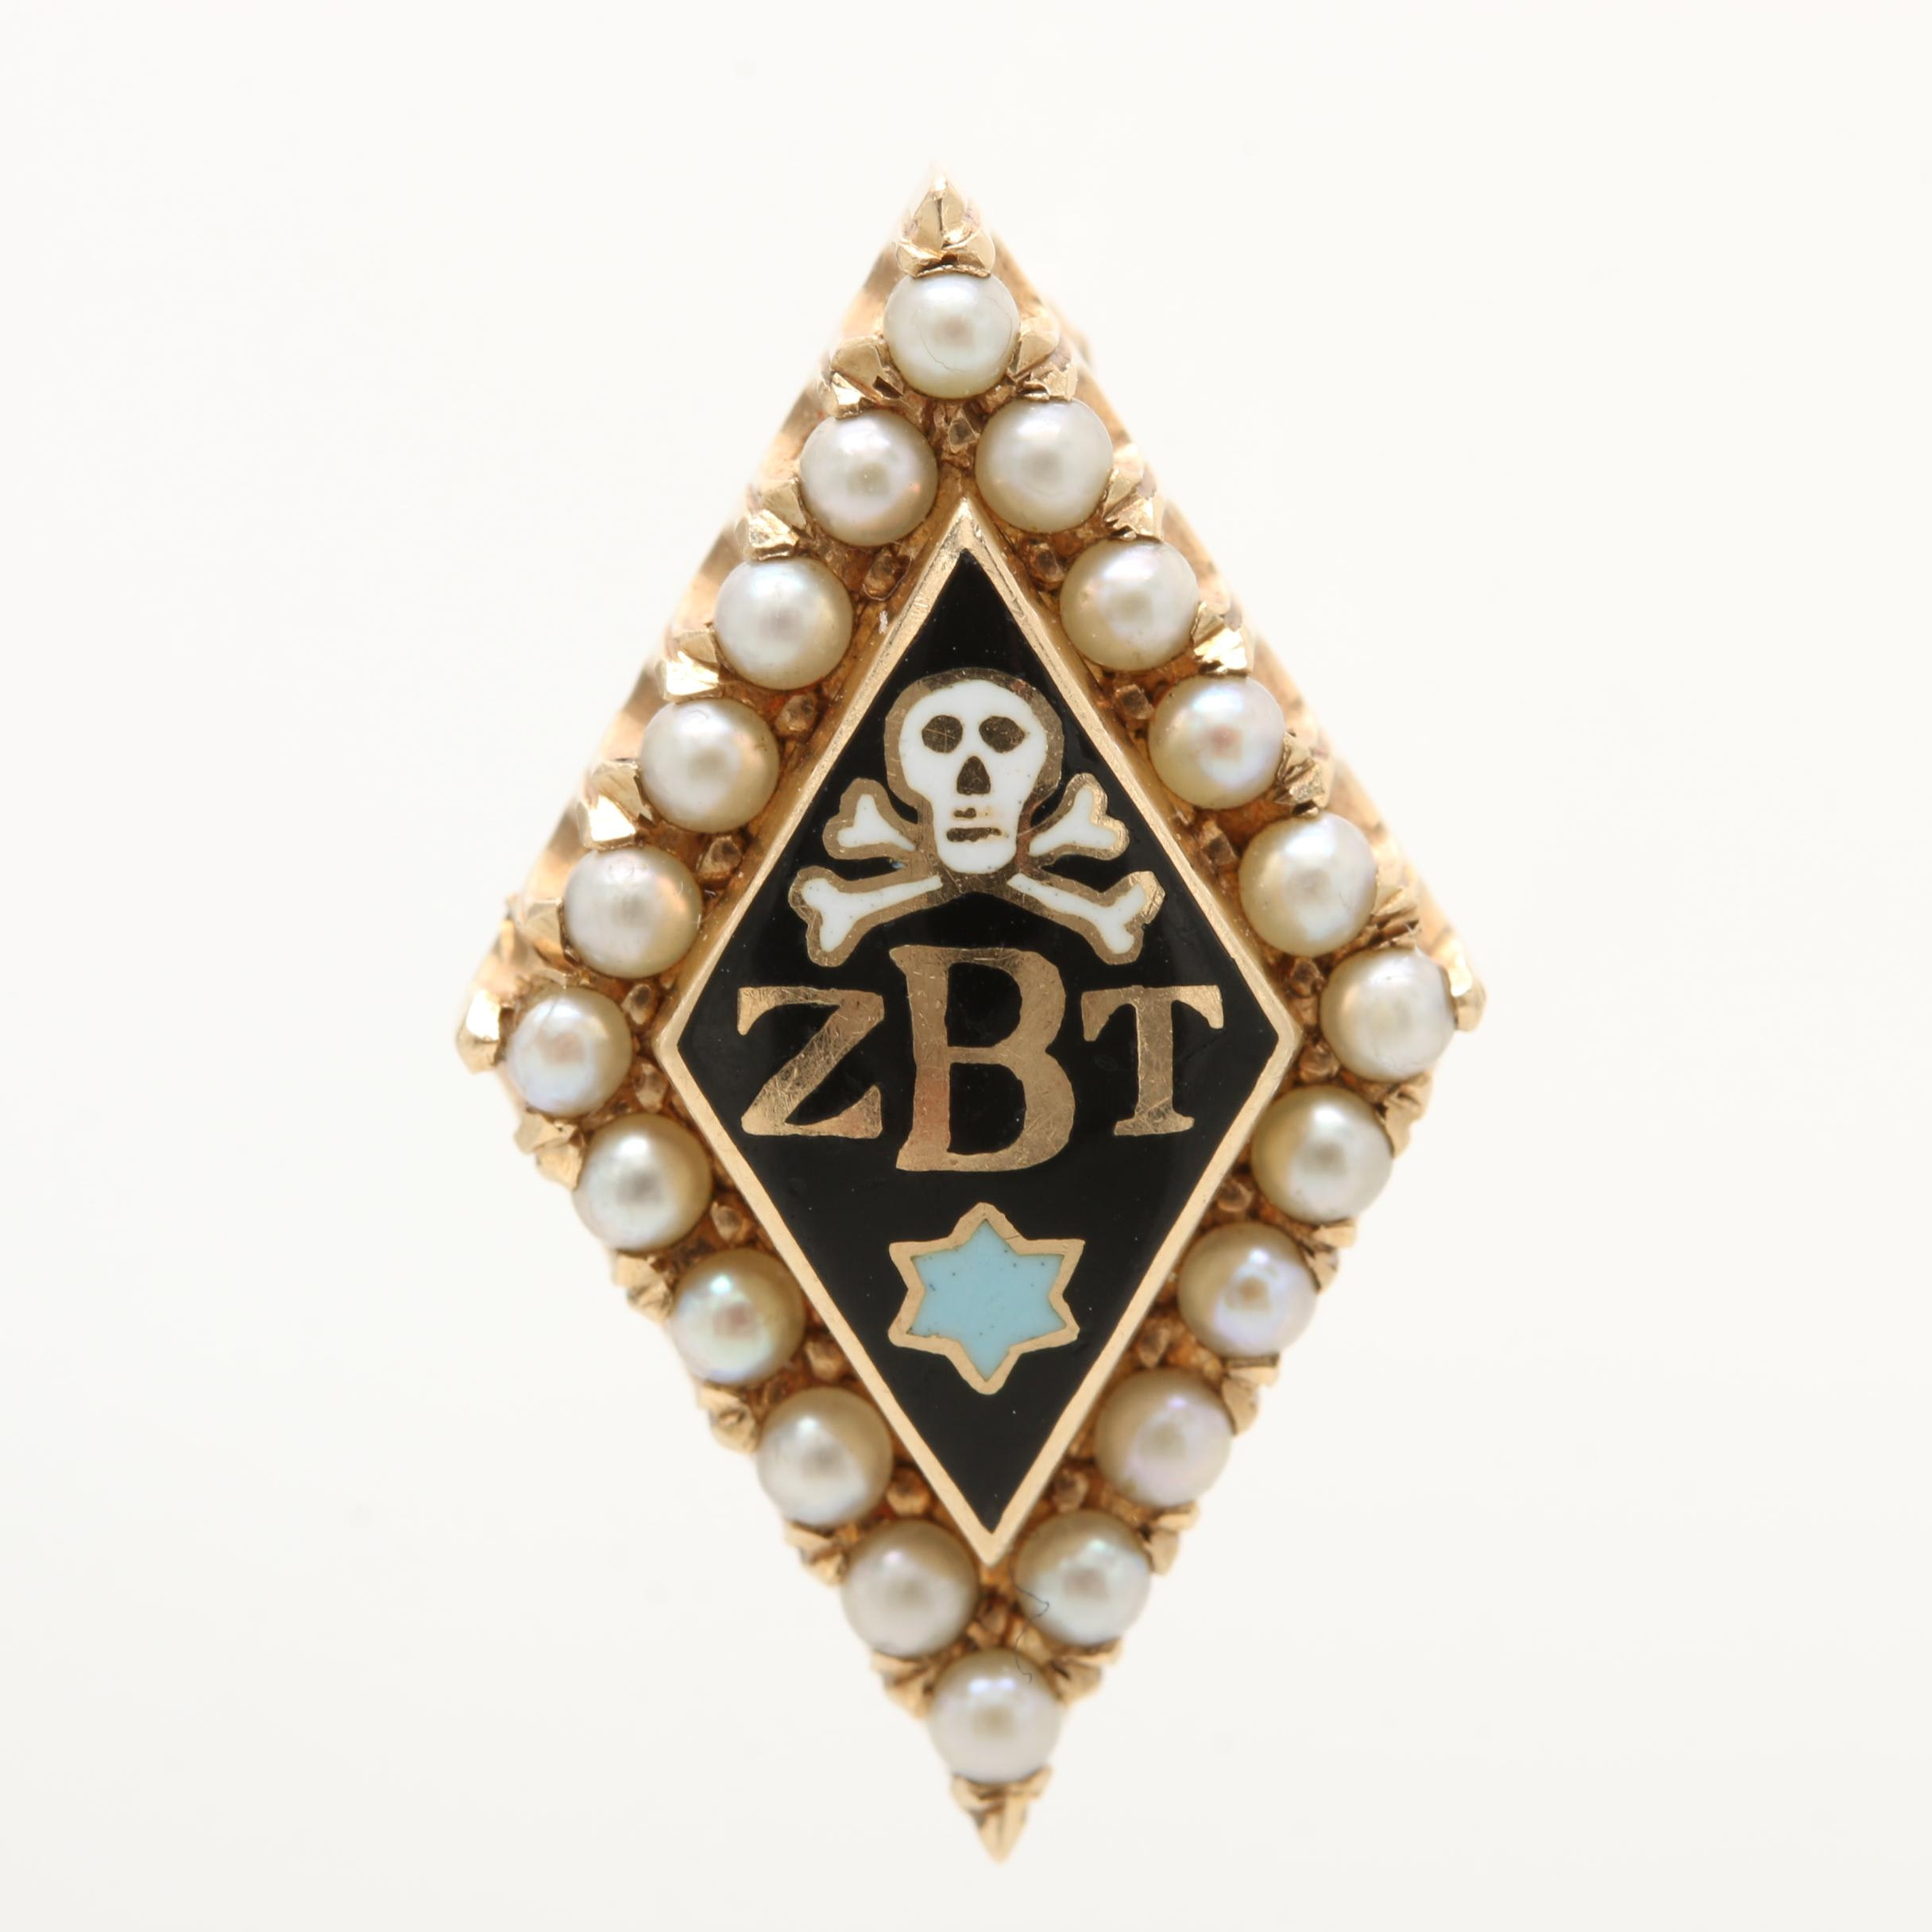 14K Yellow Gold Seed Pearl and Enamel Zeta Beta Tau Brooch